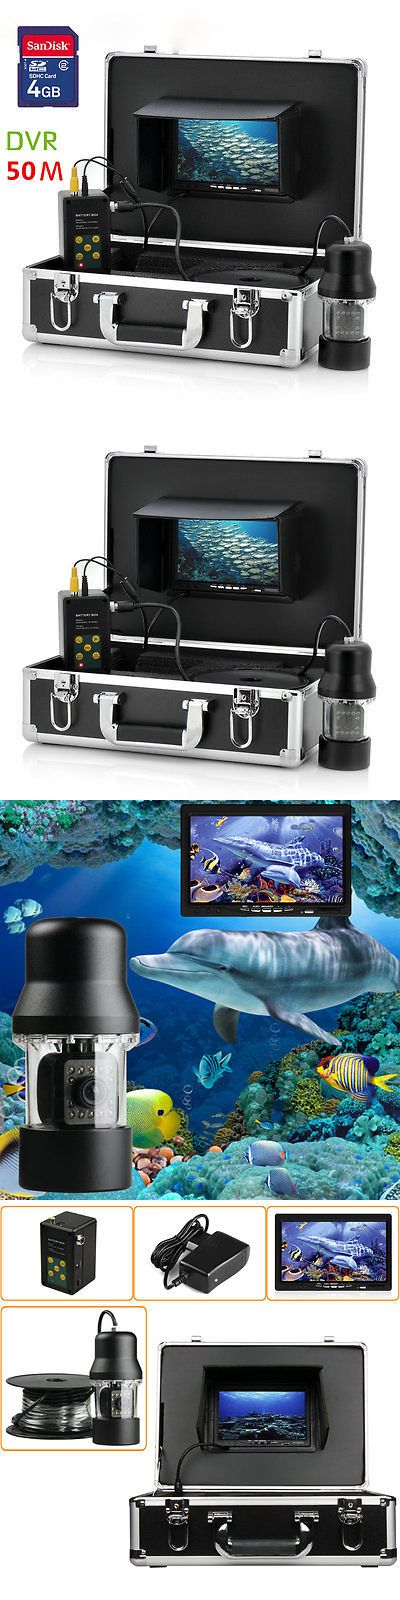 Underwater Cameras 180000: 50M 7 Tft Dvr Recorder Underwater Fishing Camera System Video Fishing Camera BUY IT NOW ONLY: $371.99